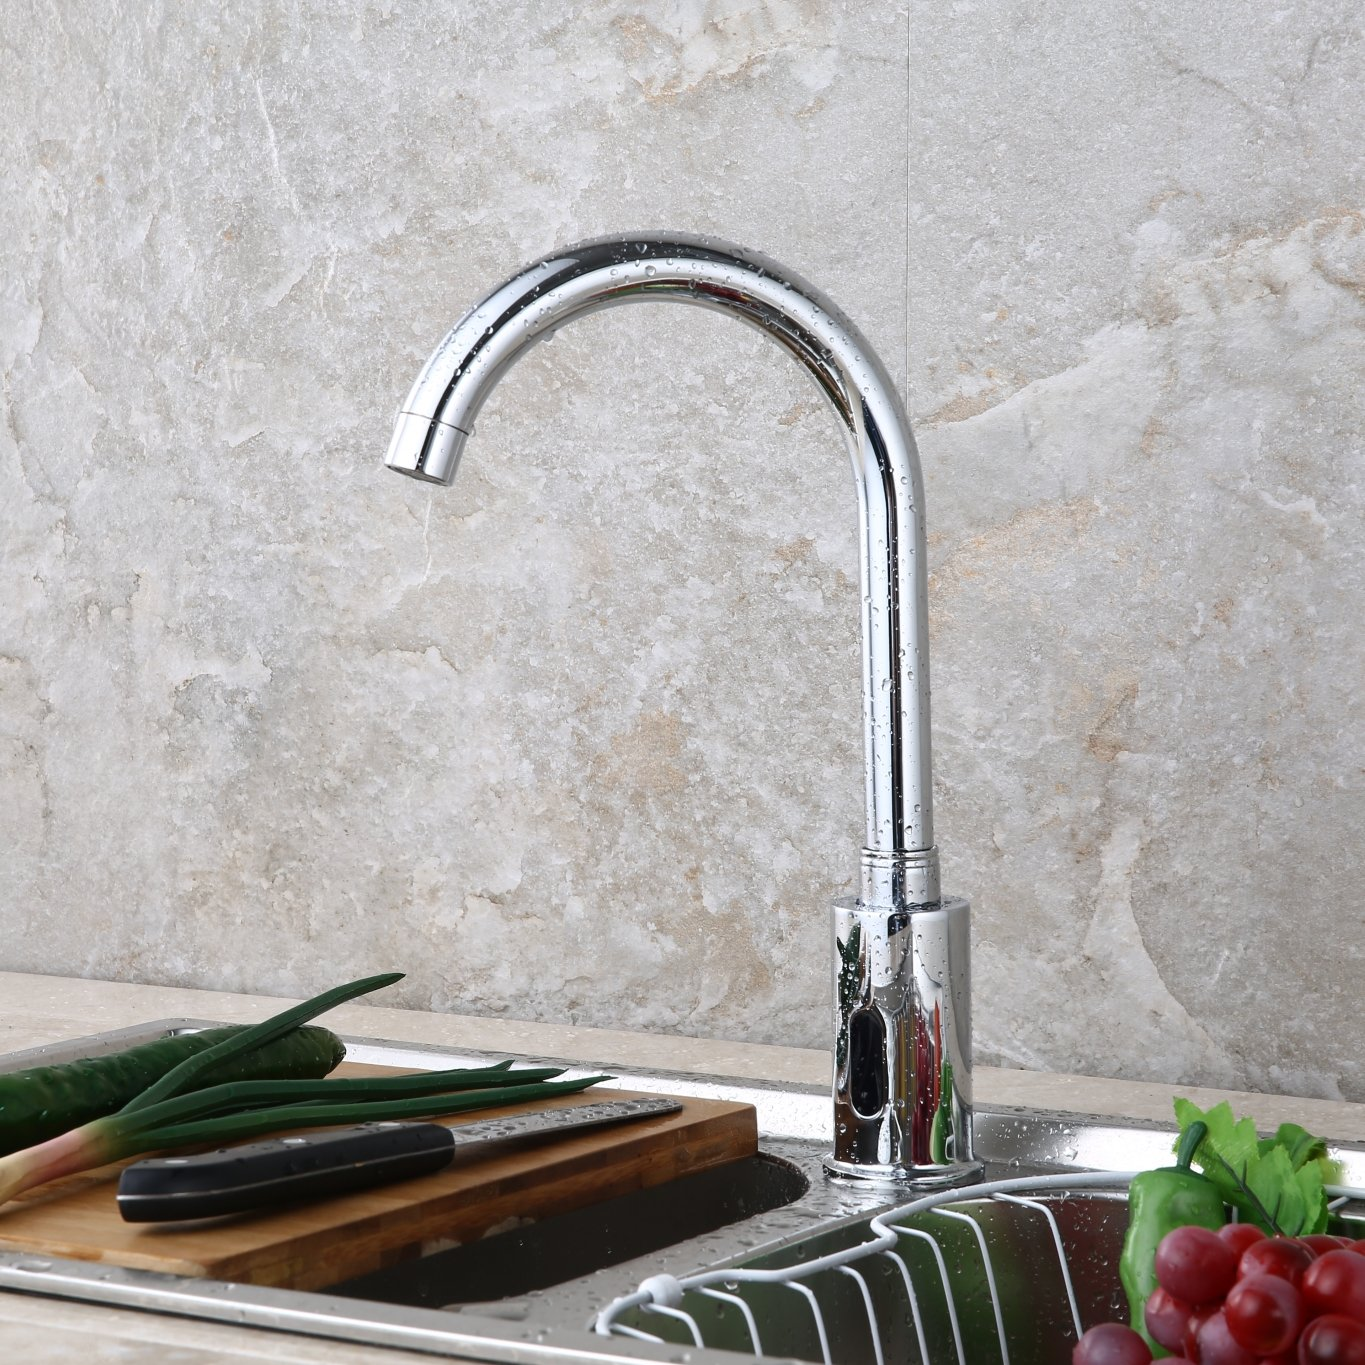 DUAL-POWER Automatic Sensor Faucet Touch Free Kitchen Bathroom Sink Tap, Chrome by Amyfaucet (Image #3)